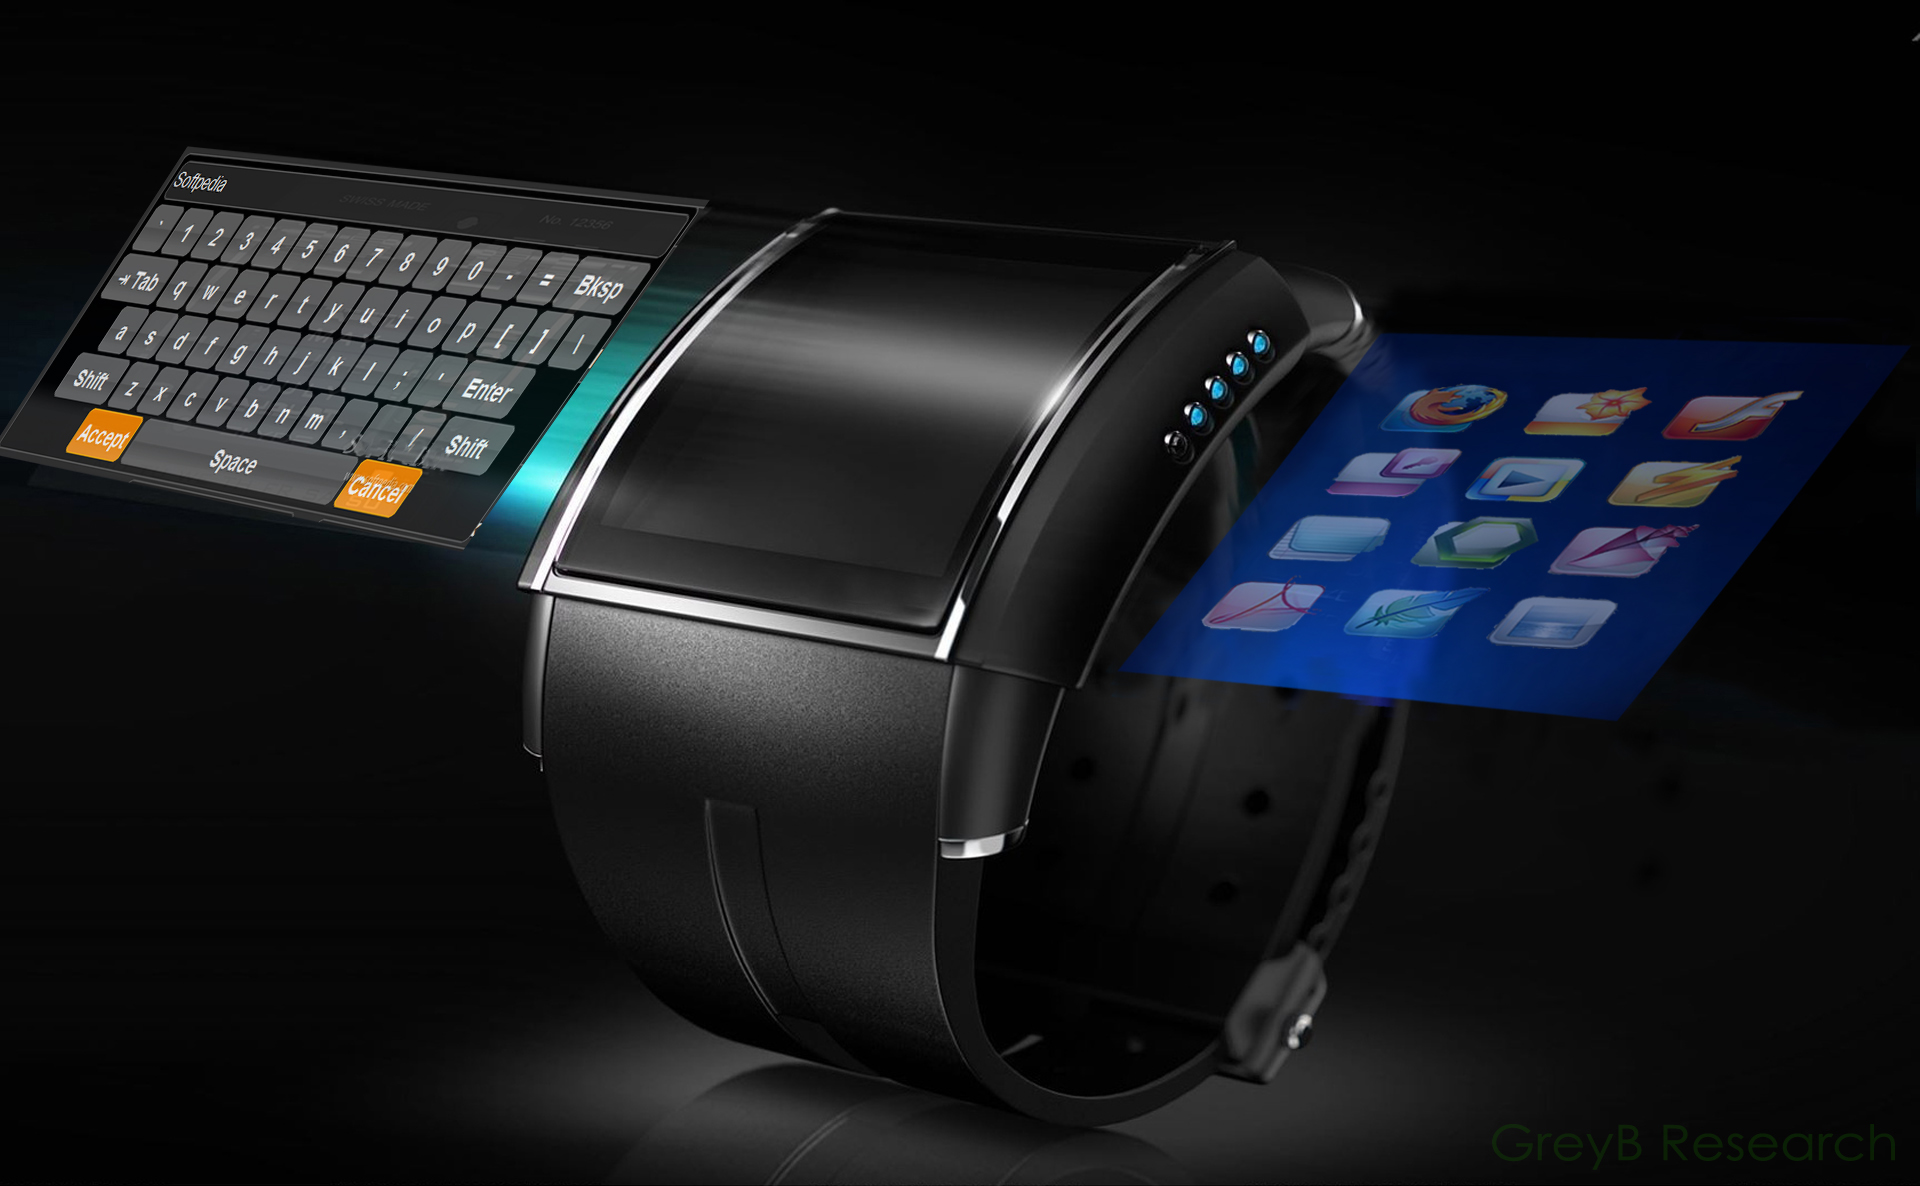 Smartwatch Virtual Keyboard